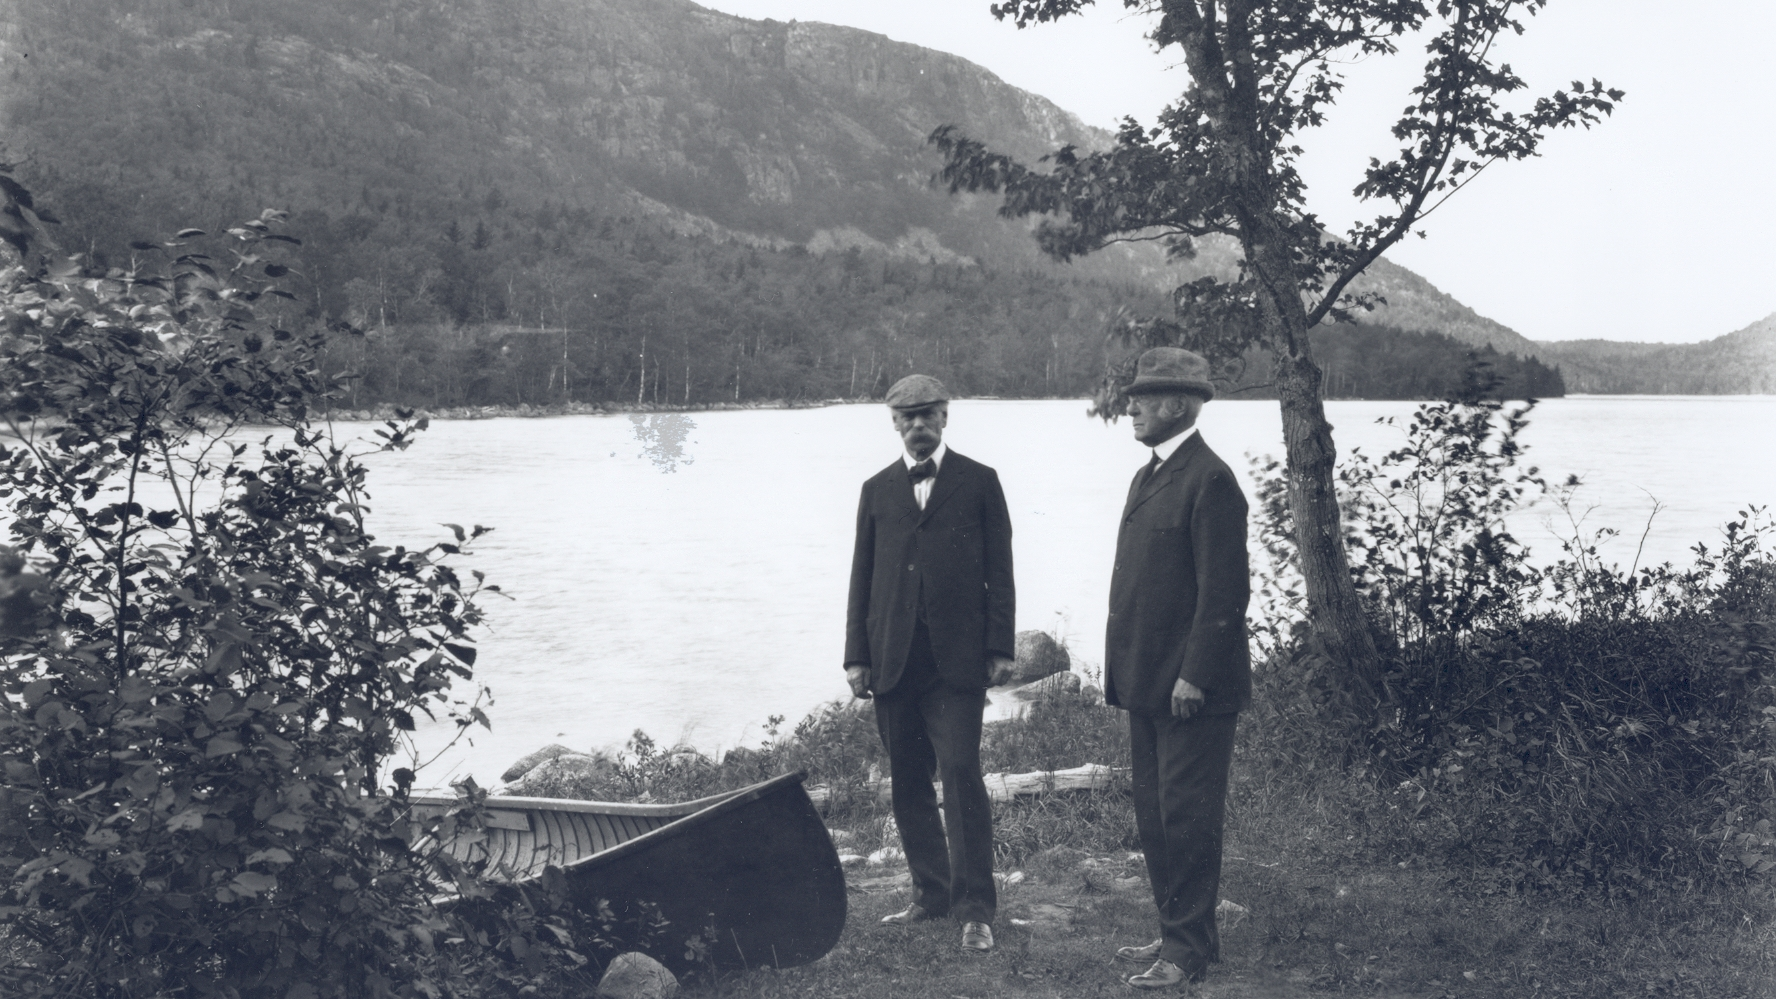 George Dorr and Charles W. Eliot, two influential figures in the founding of Acadia. Courtesy National Park Service/Acadia National Park